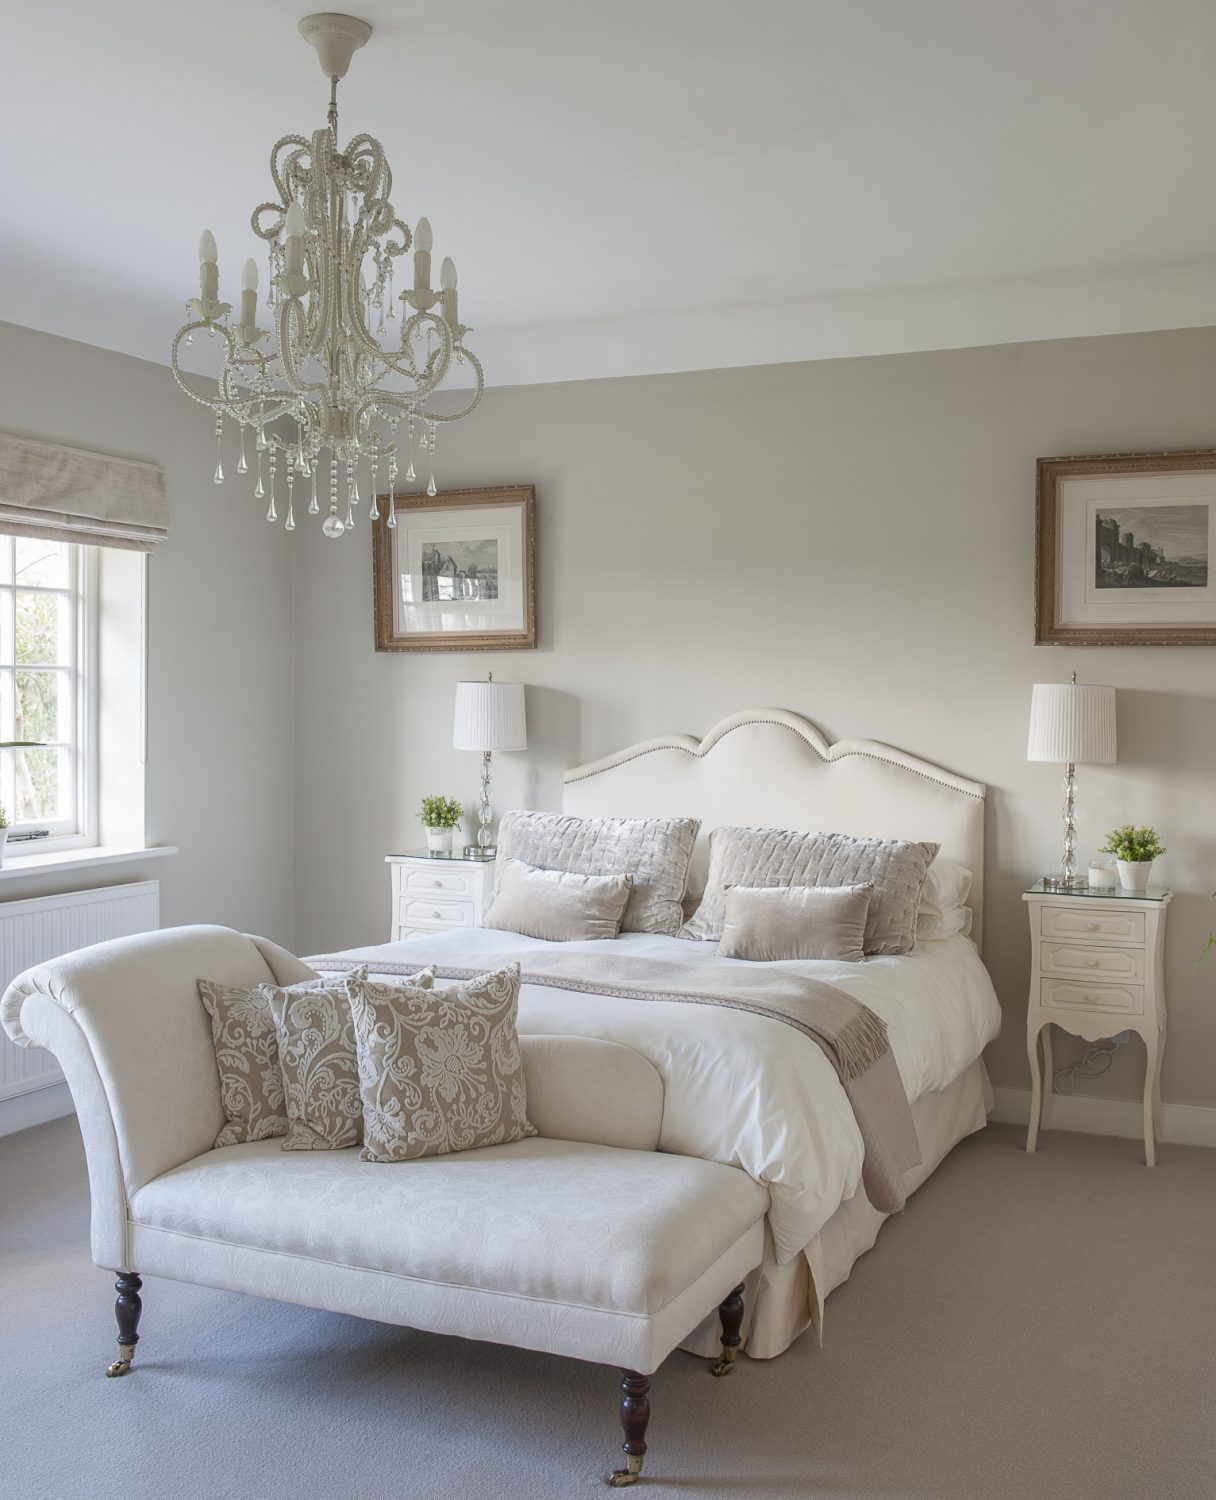 A classic chaise longue in one of the guest bedrooms